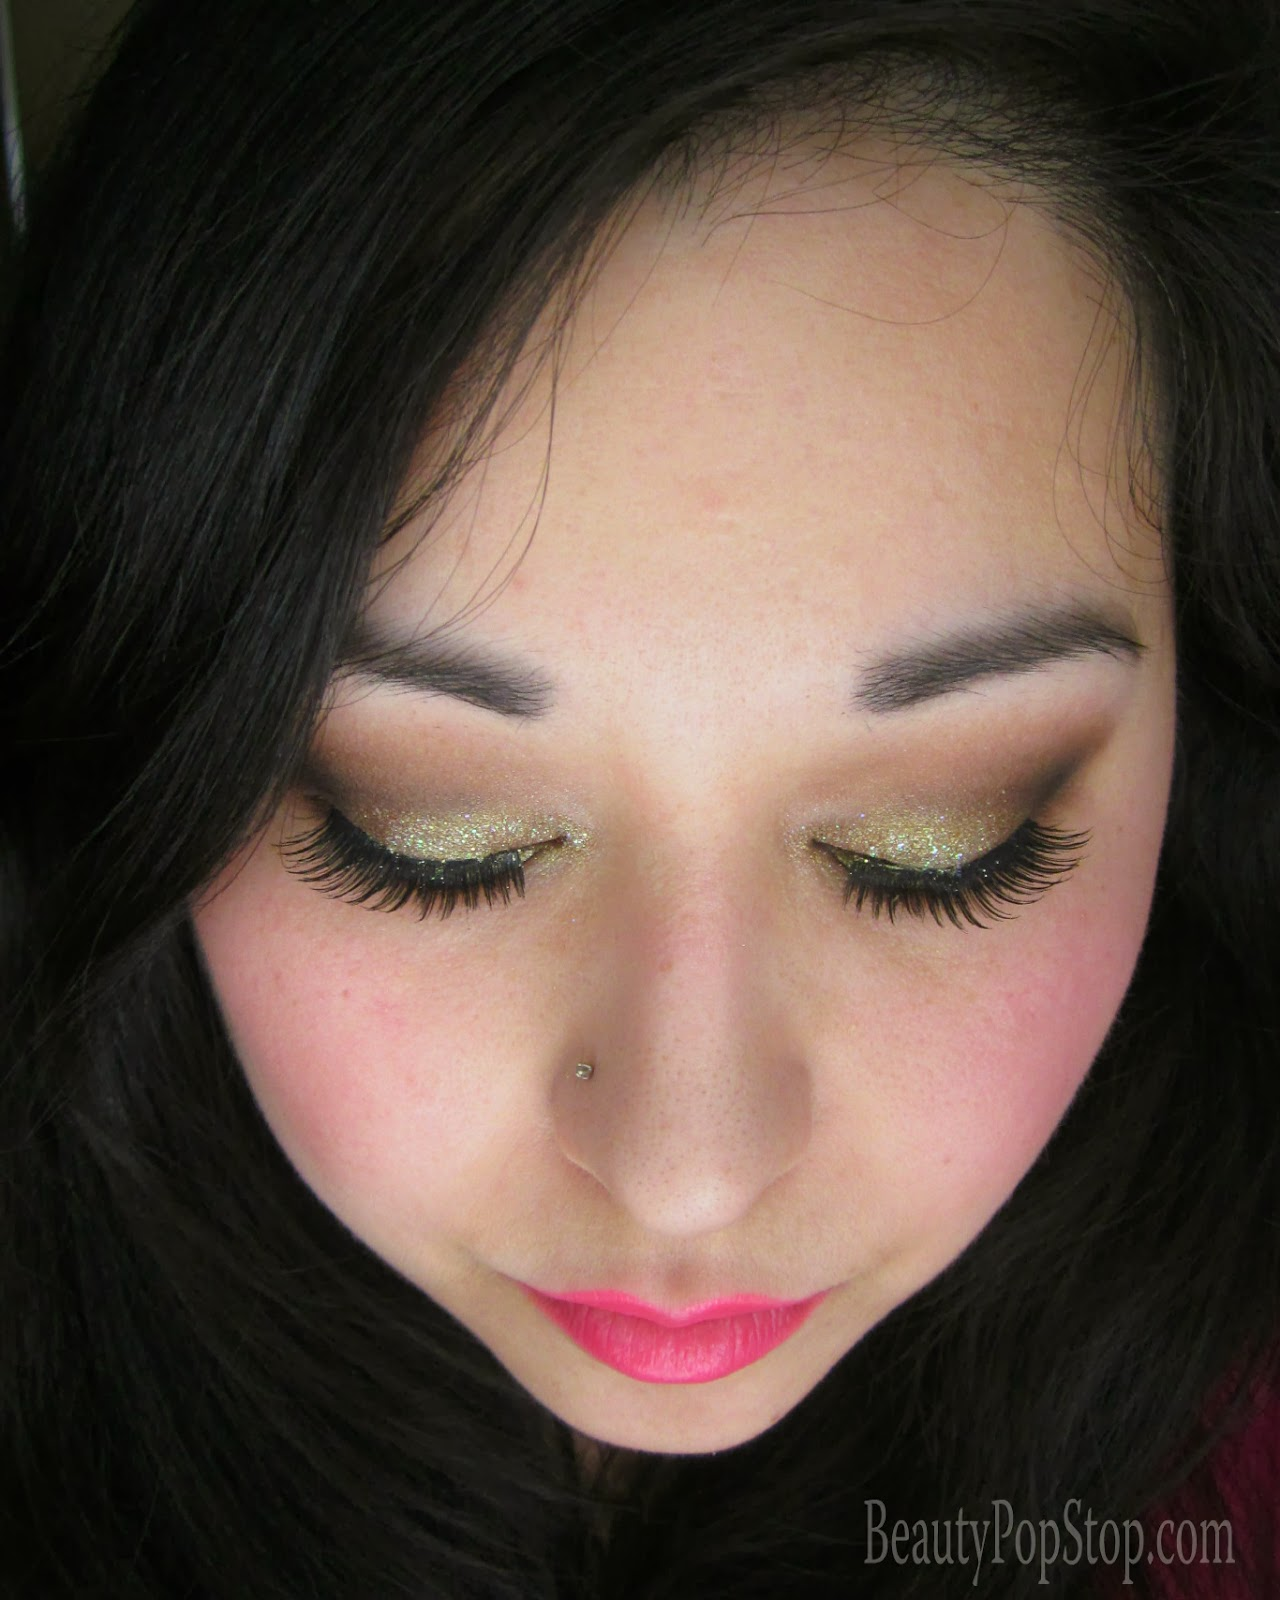 valentine's day makeup tutorial using mac cosmetics and lit cosmetics glitter